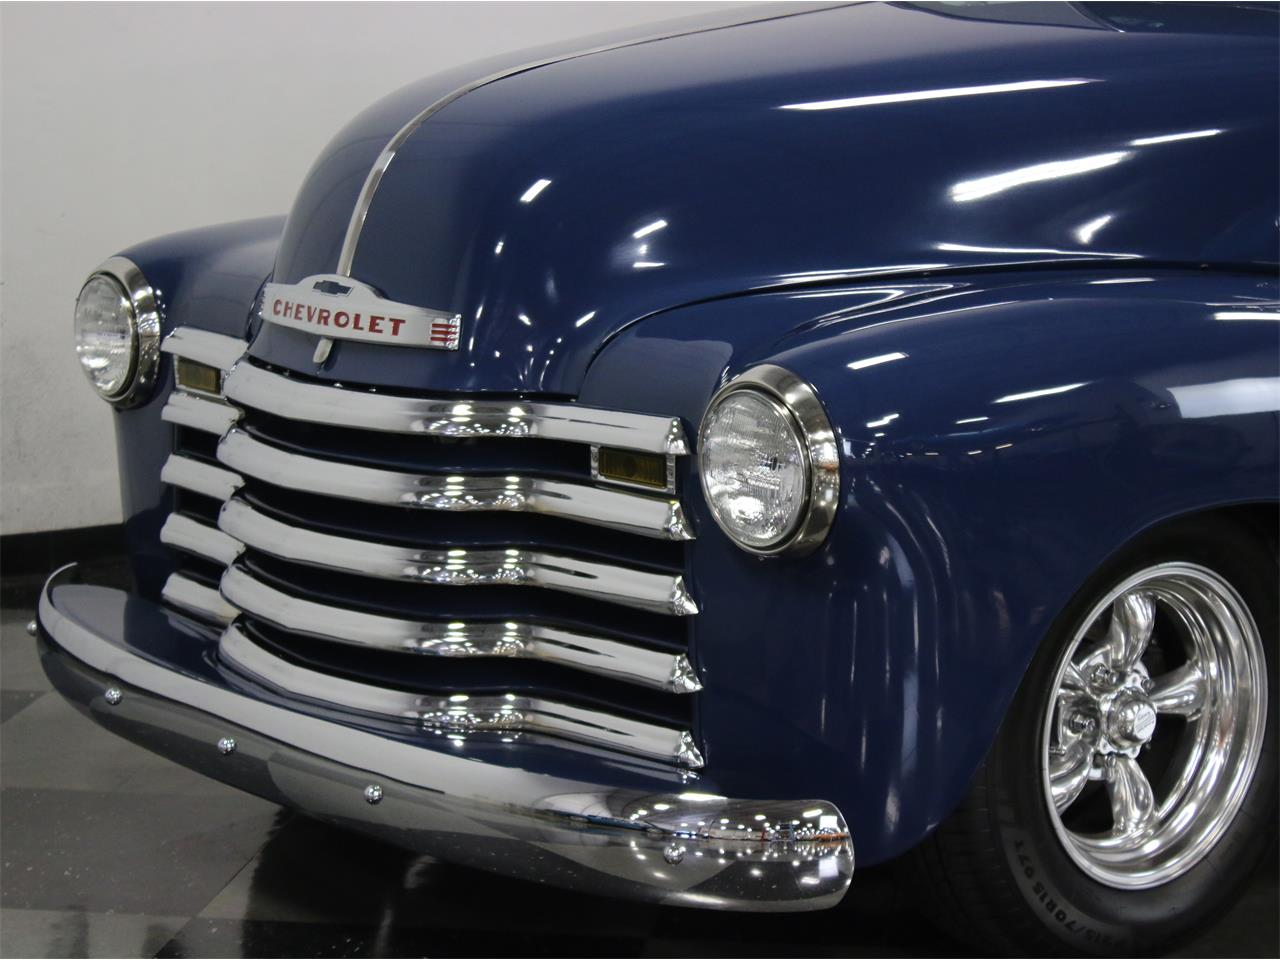 Large Picture of 1950 Chevrolet 3100 located in Sugar Land Texas - $48,000.00 - ODW8